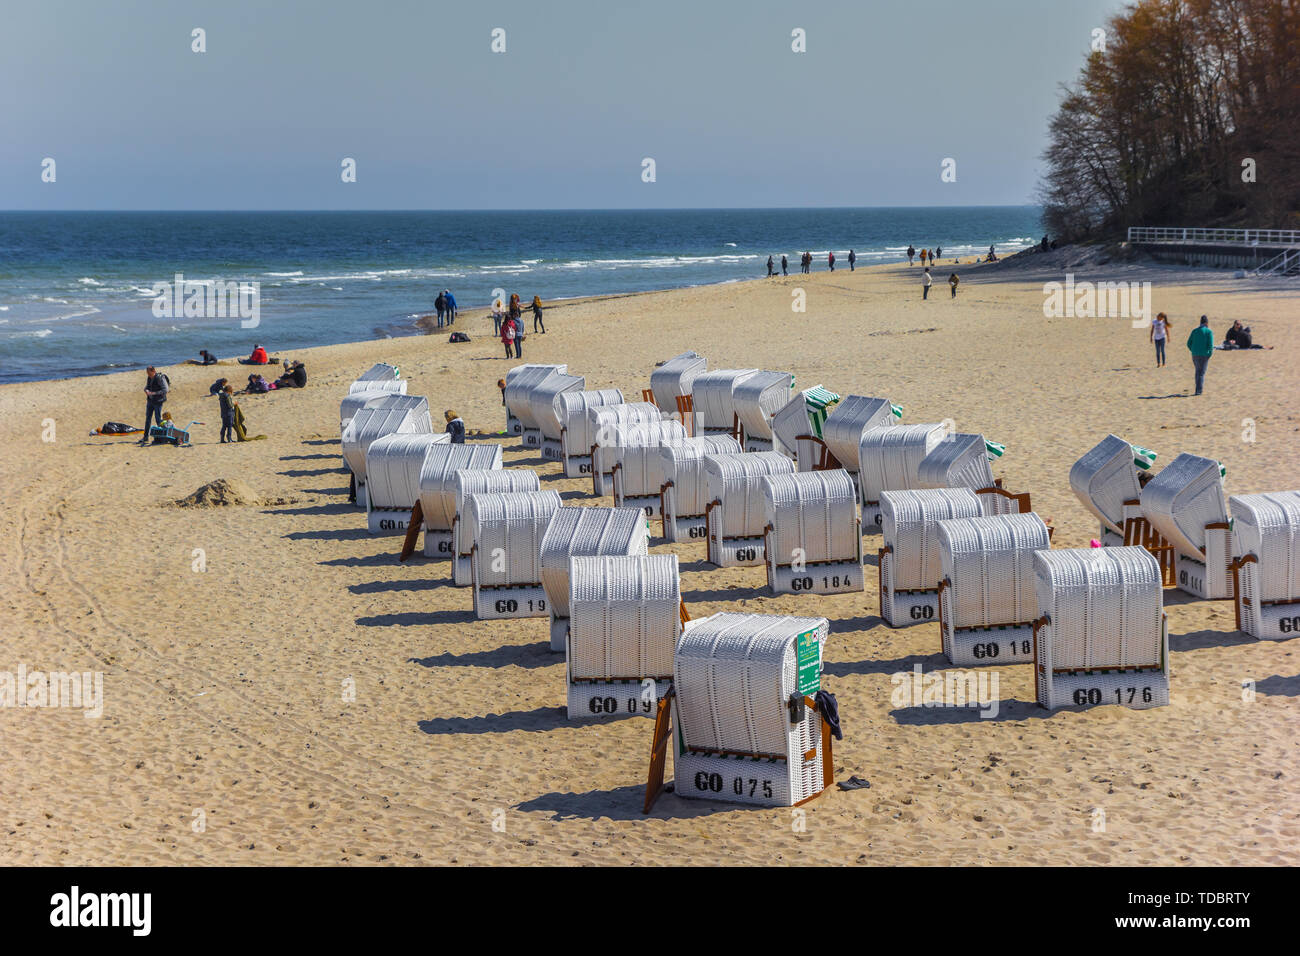 Traditional Strandkorbe chairs on the beach of Sellin on Rugen island, Germany - Stock Image